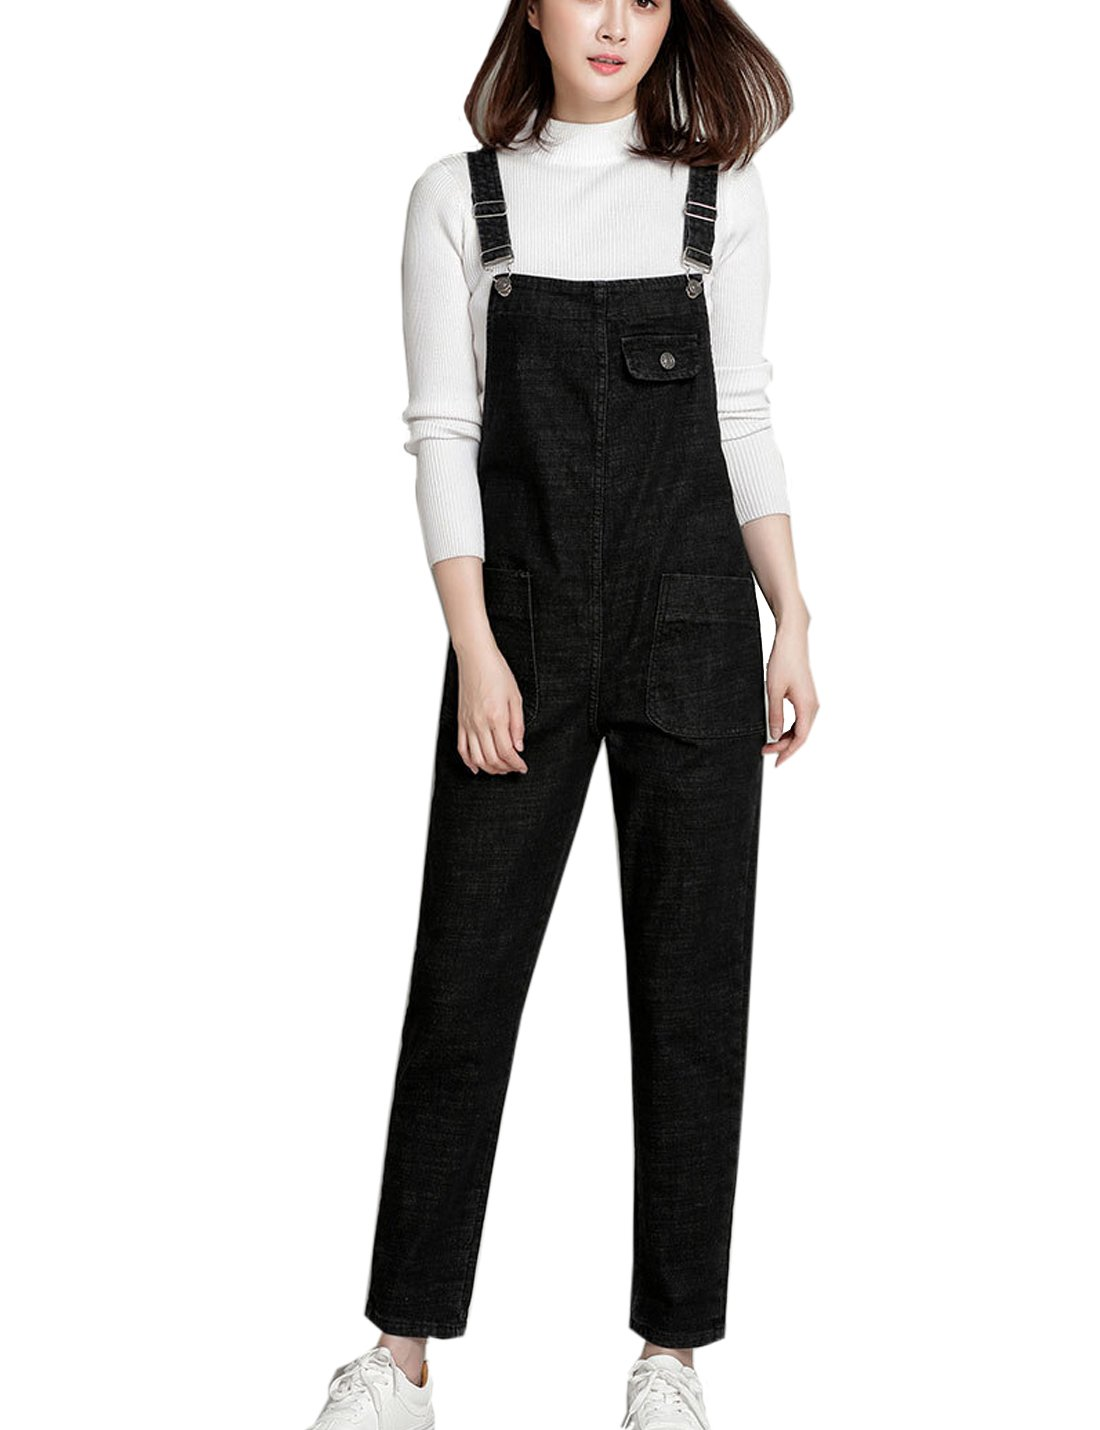 Flygo Women's Casual Bib Denim Overalls Pant Jeans Jumpsuits with Pockets (X-Small, Black) by Flygo